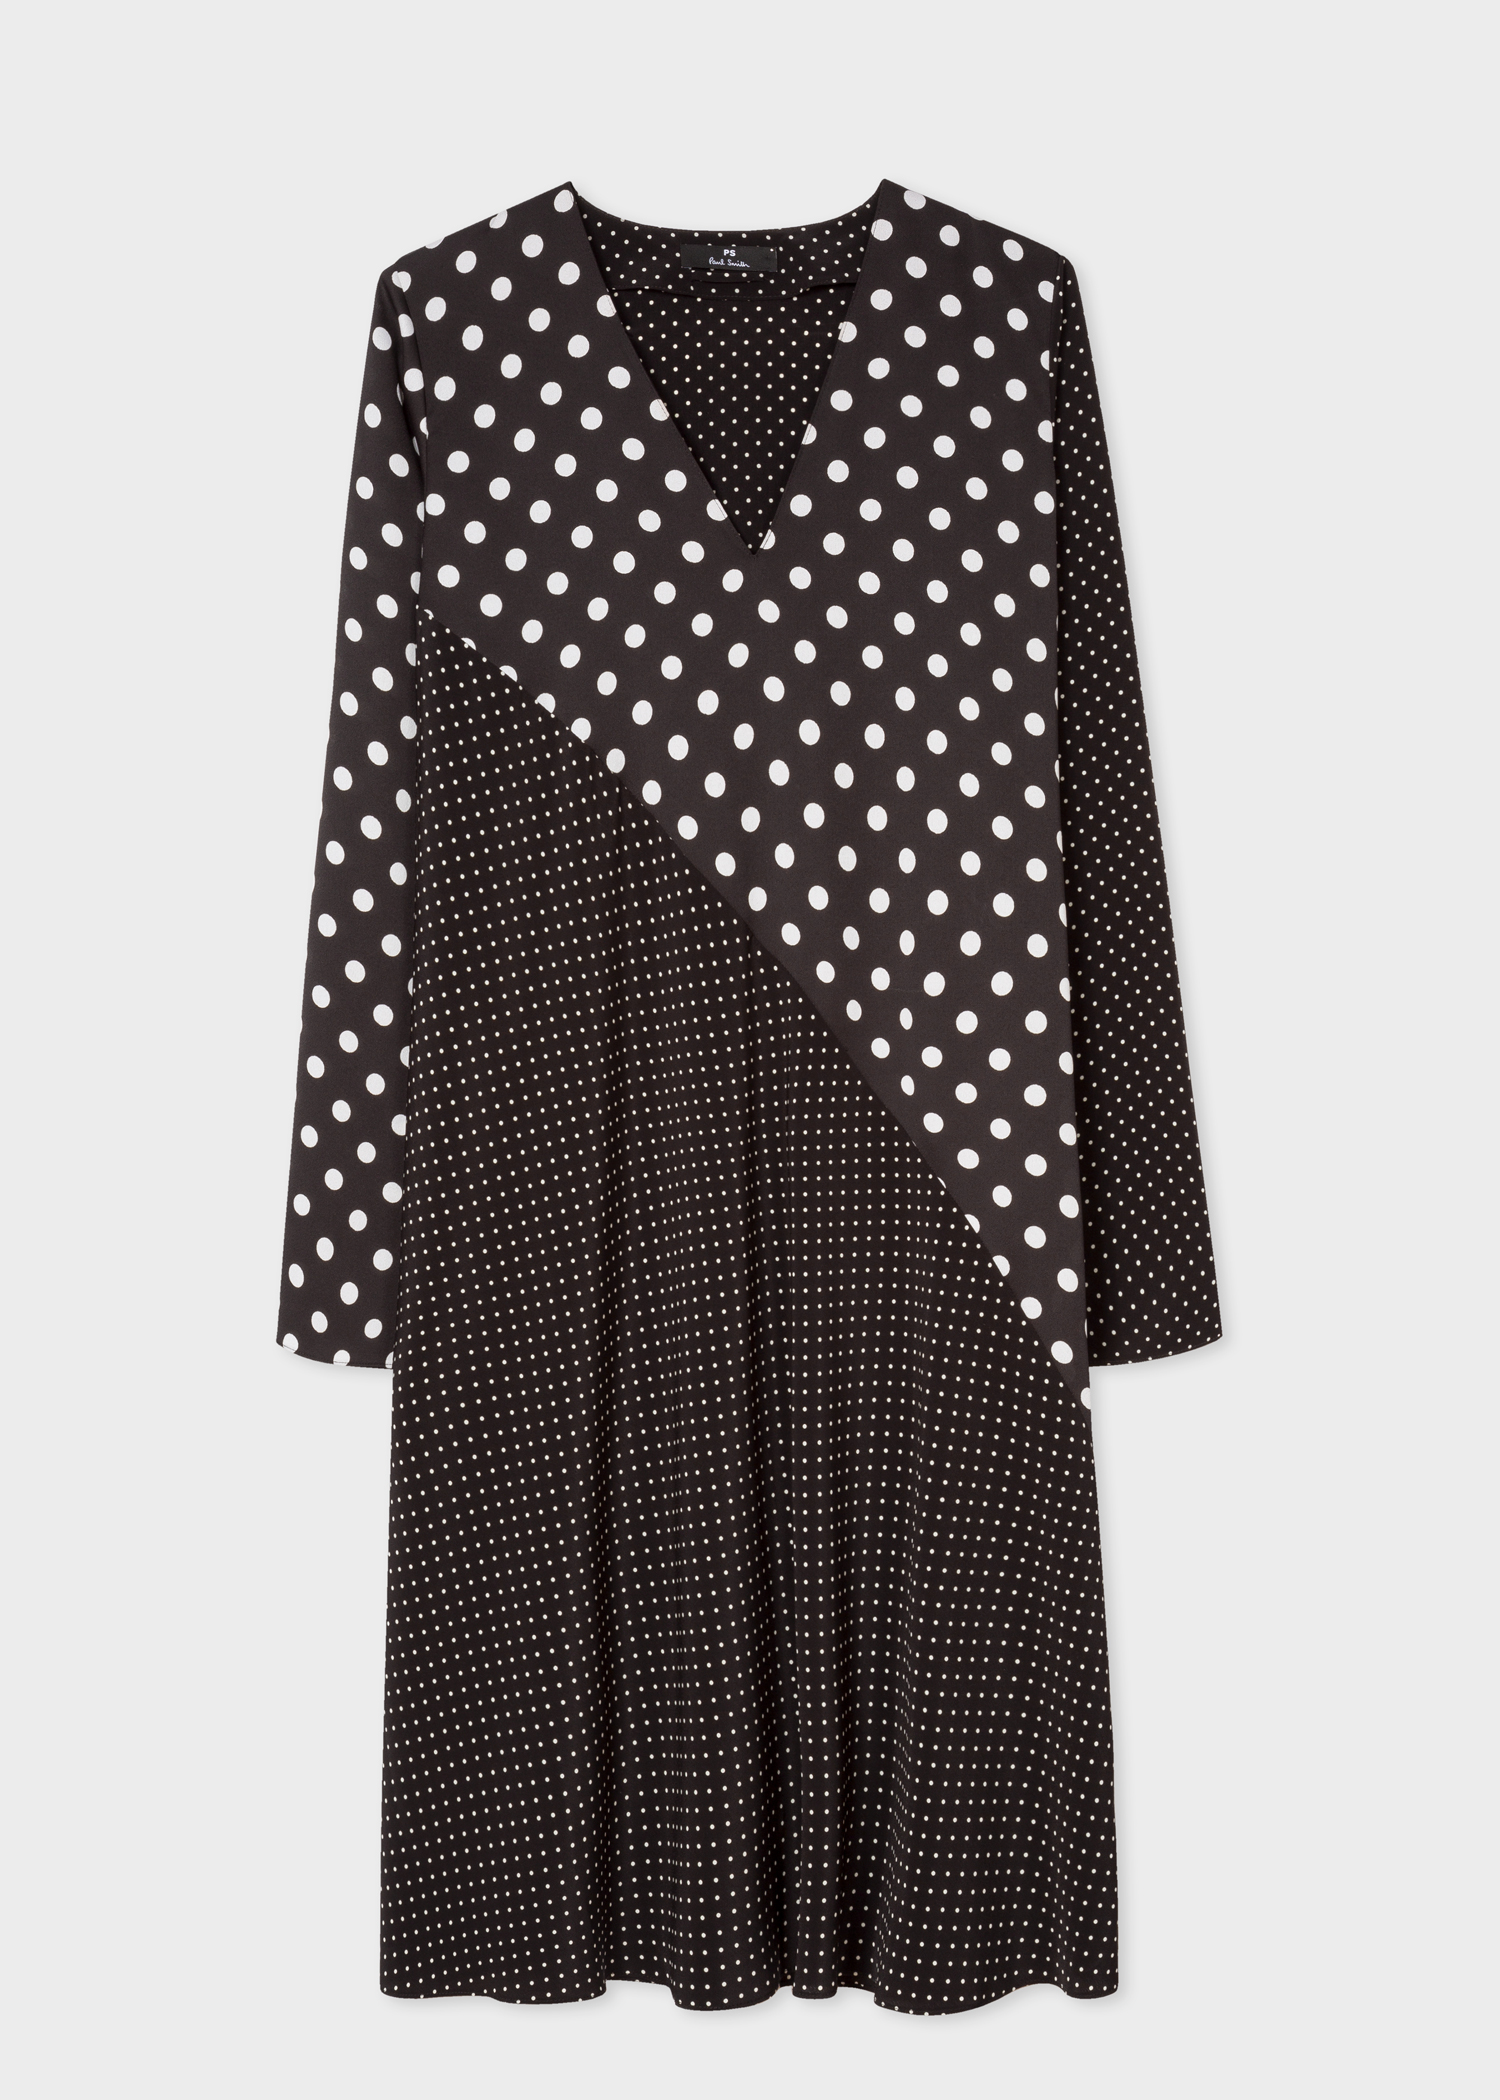 Front view without belt - Women s Black And White Polka Dot V-Neck Shirt  Dress. PS PAUL SMITH a4128c569